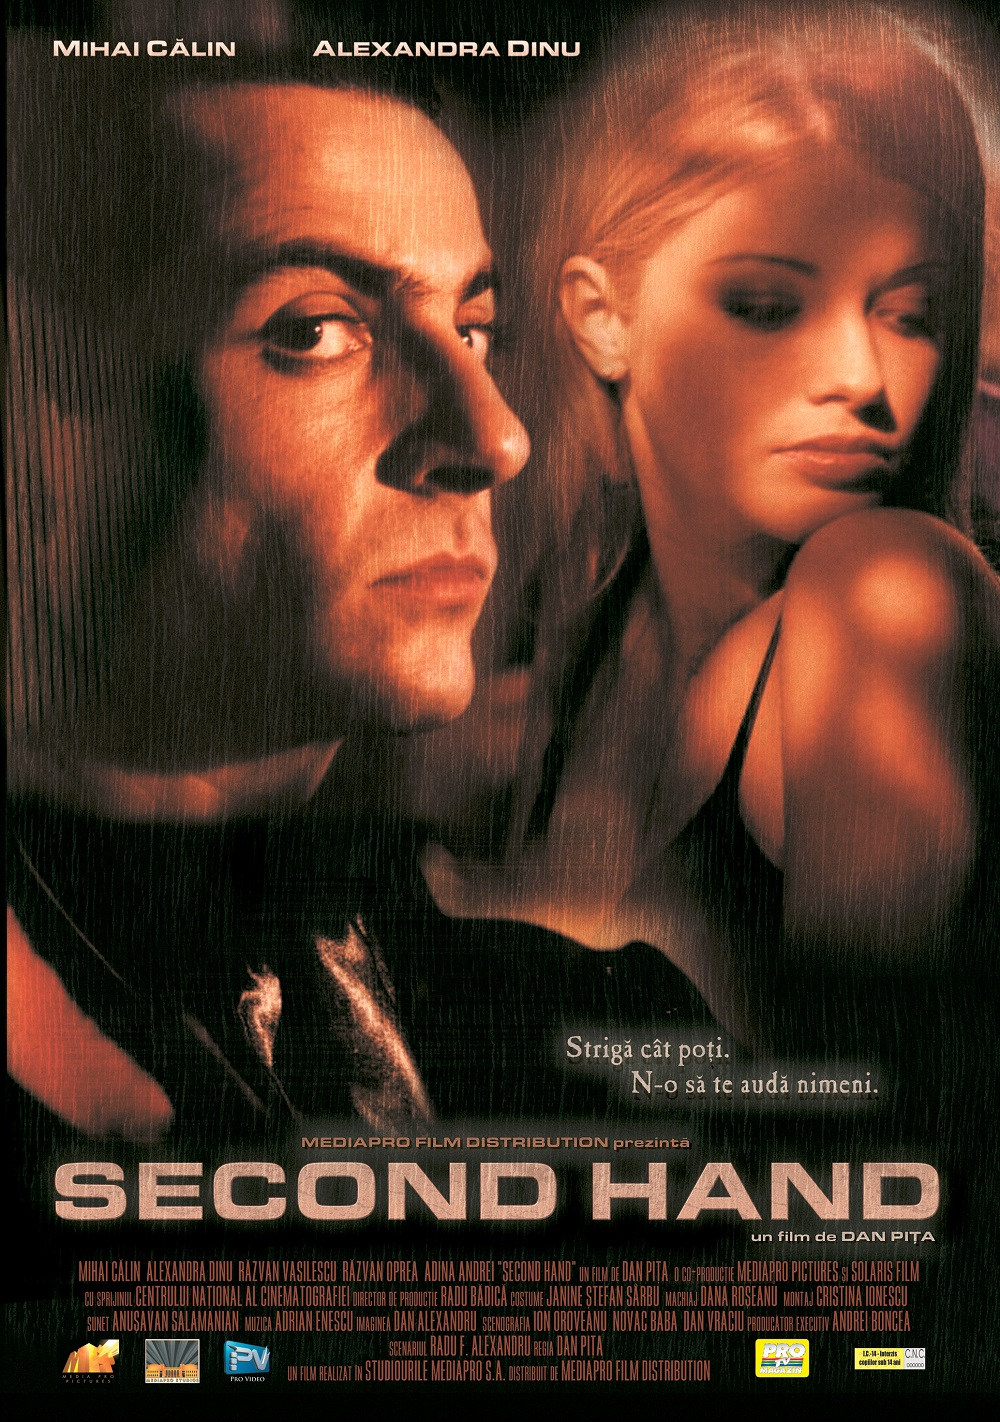 Second Hand (2004) - Photo